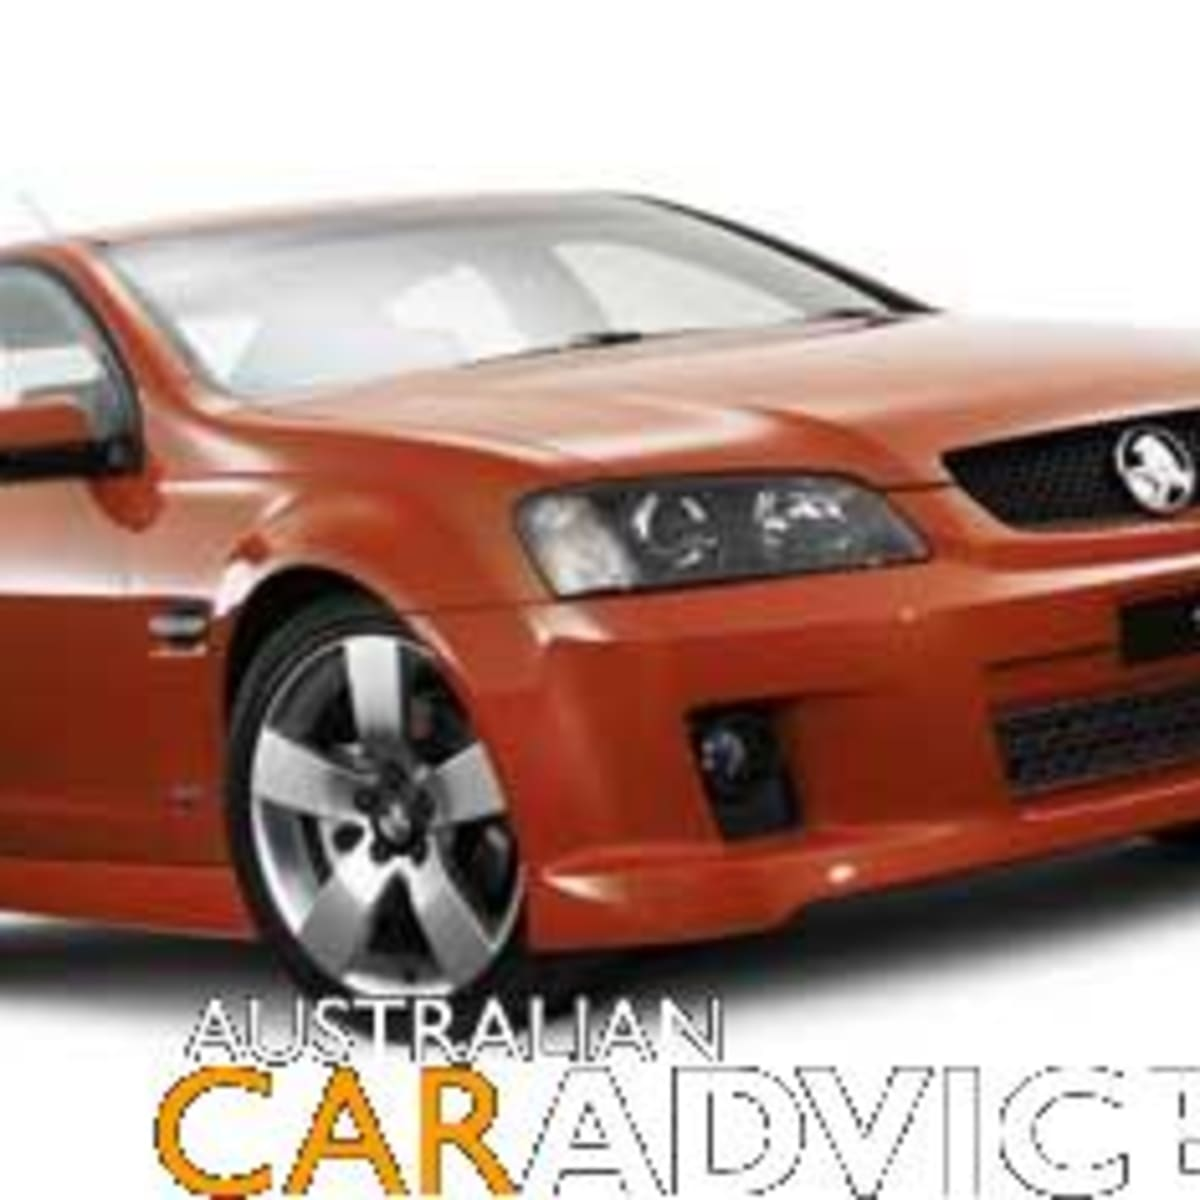 Holden VE Commodore Battery Drain Issue Resolution | CarAdvice